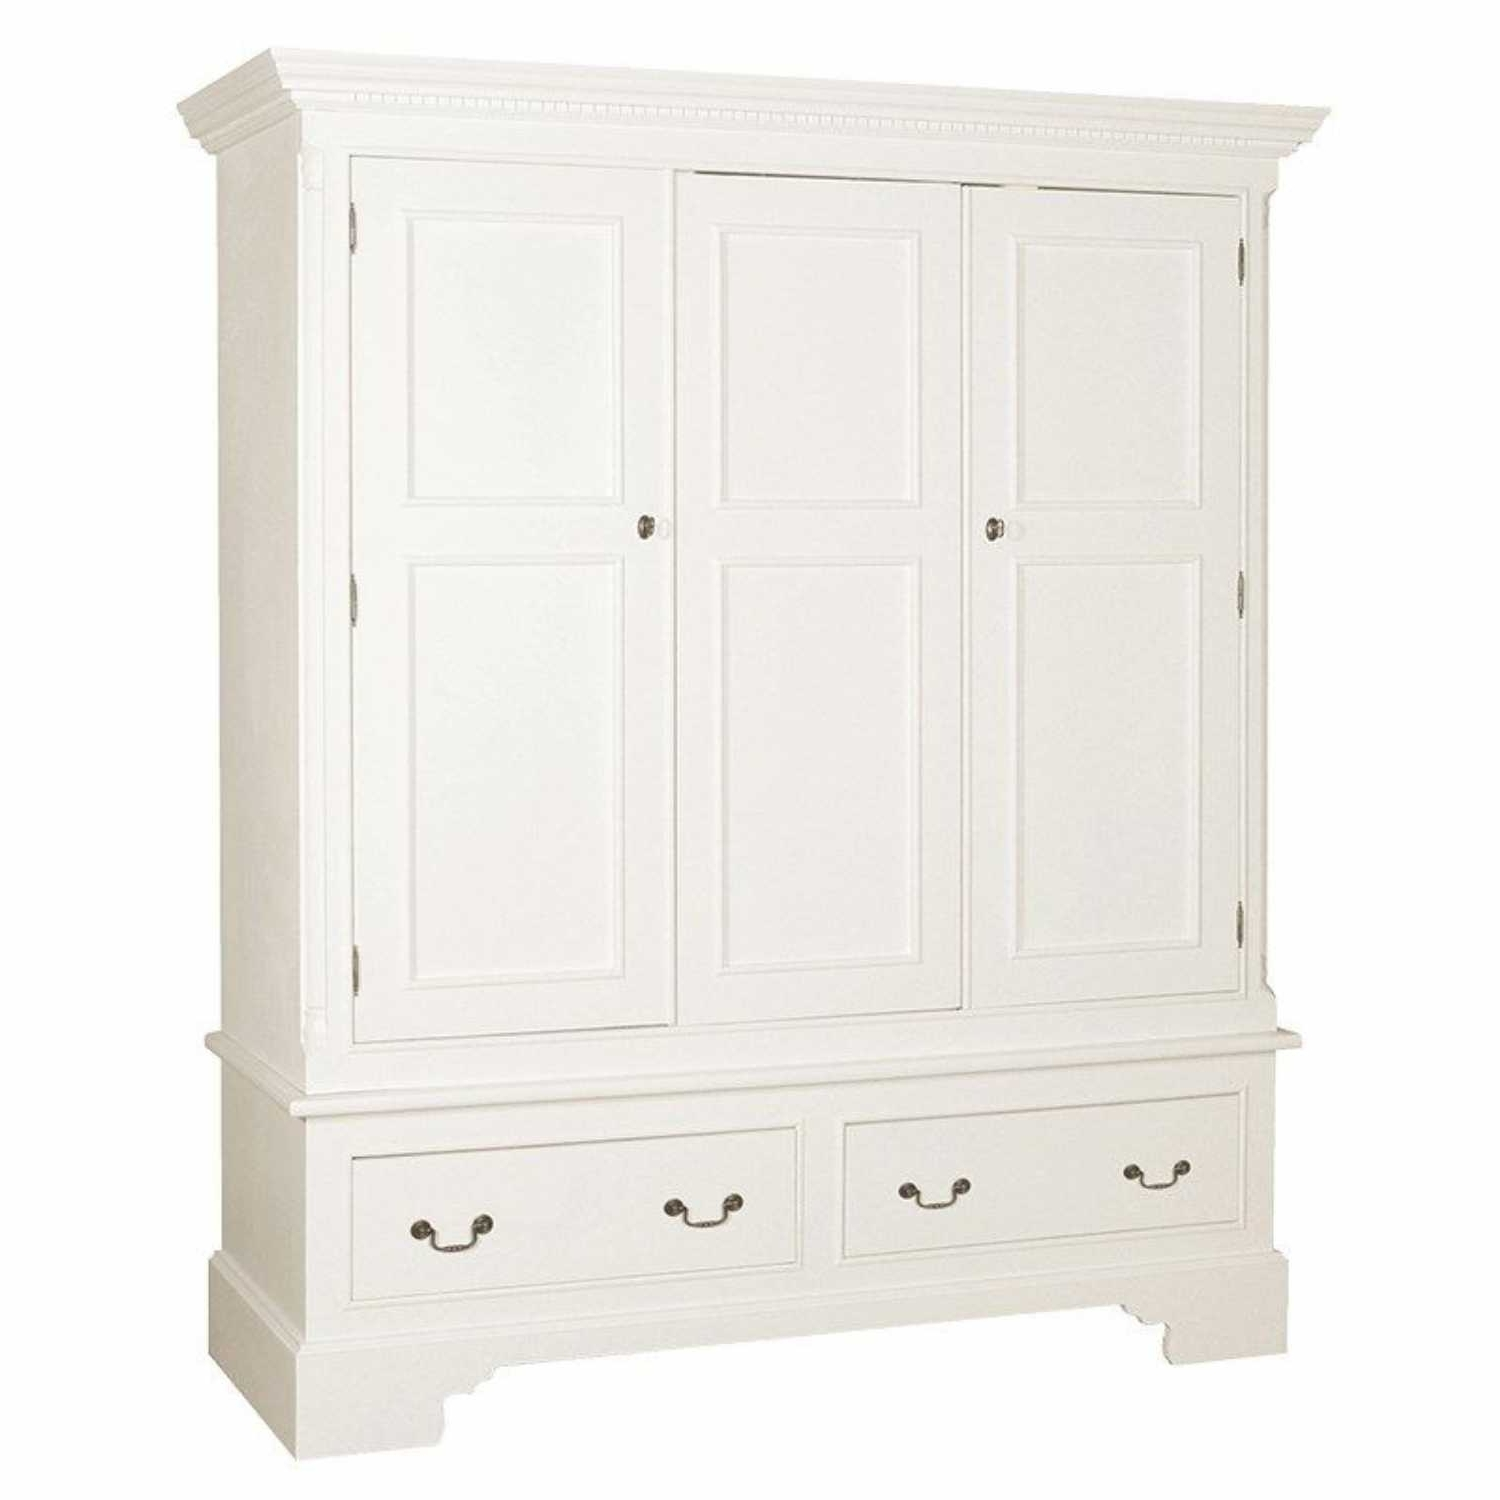 Best And Newest White Shabby Chic Wardrobes With Regard To Georgian Shabby Chic White Painted Triple 3 Door 2 Drawer Wardrobe (View 1 of 15)